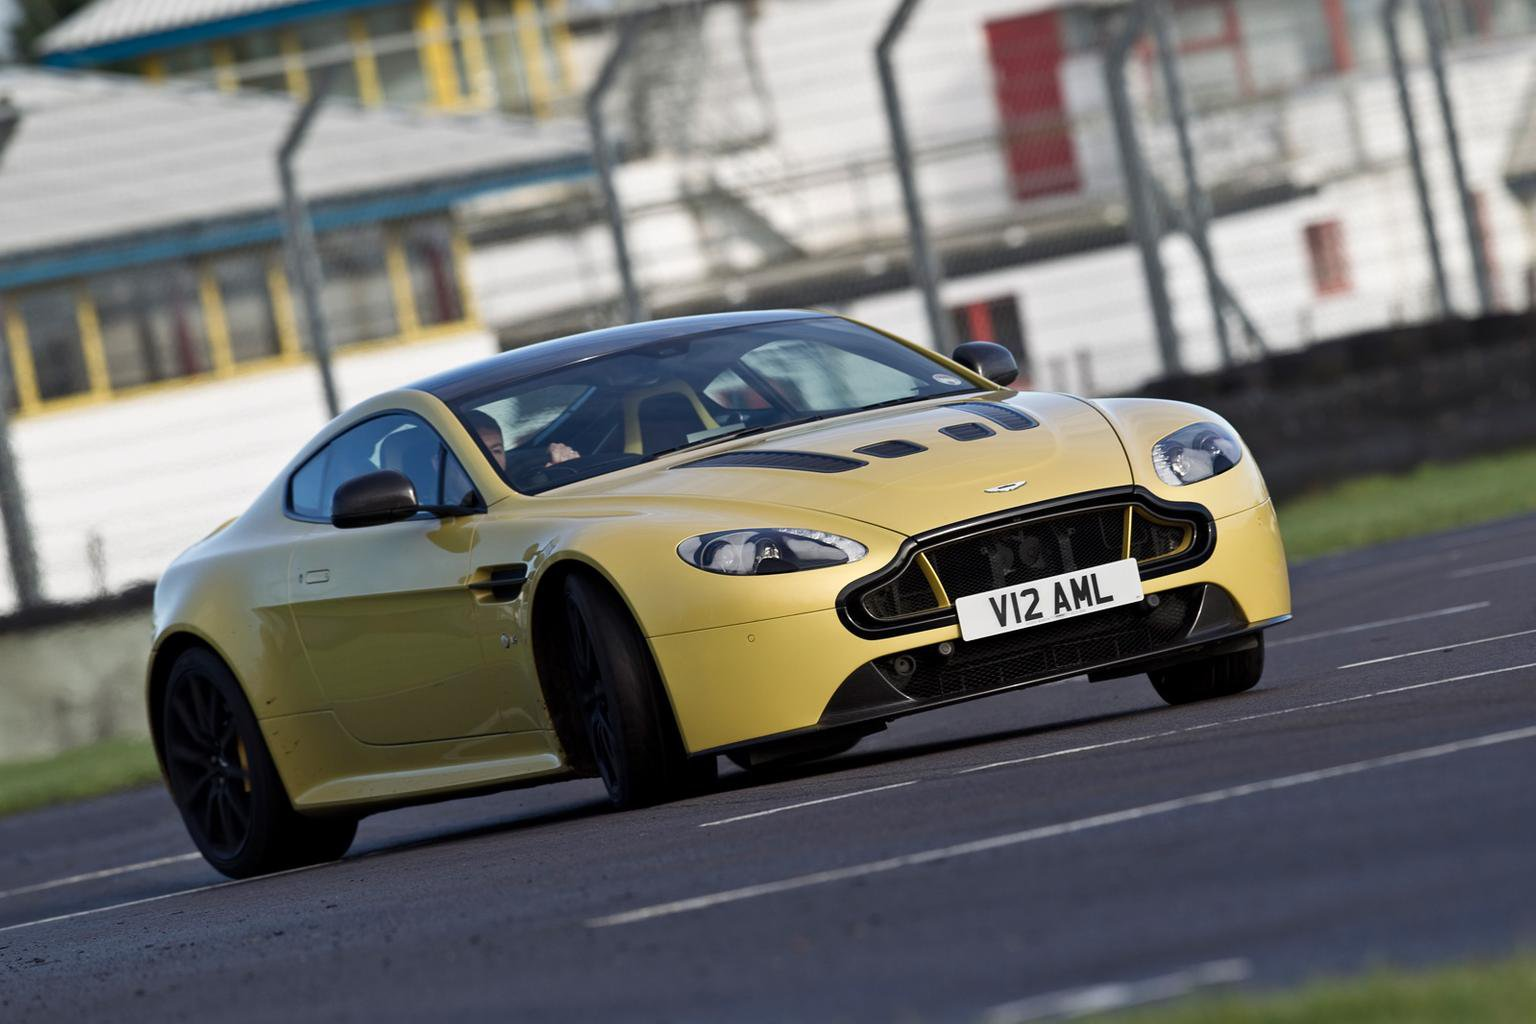 2014 Aston Martin V12 Vantage S review